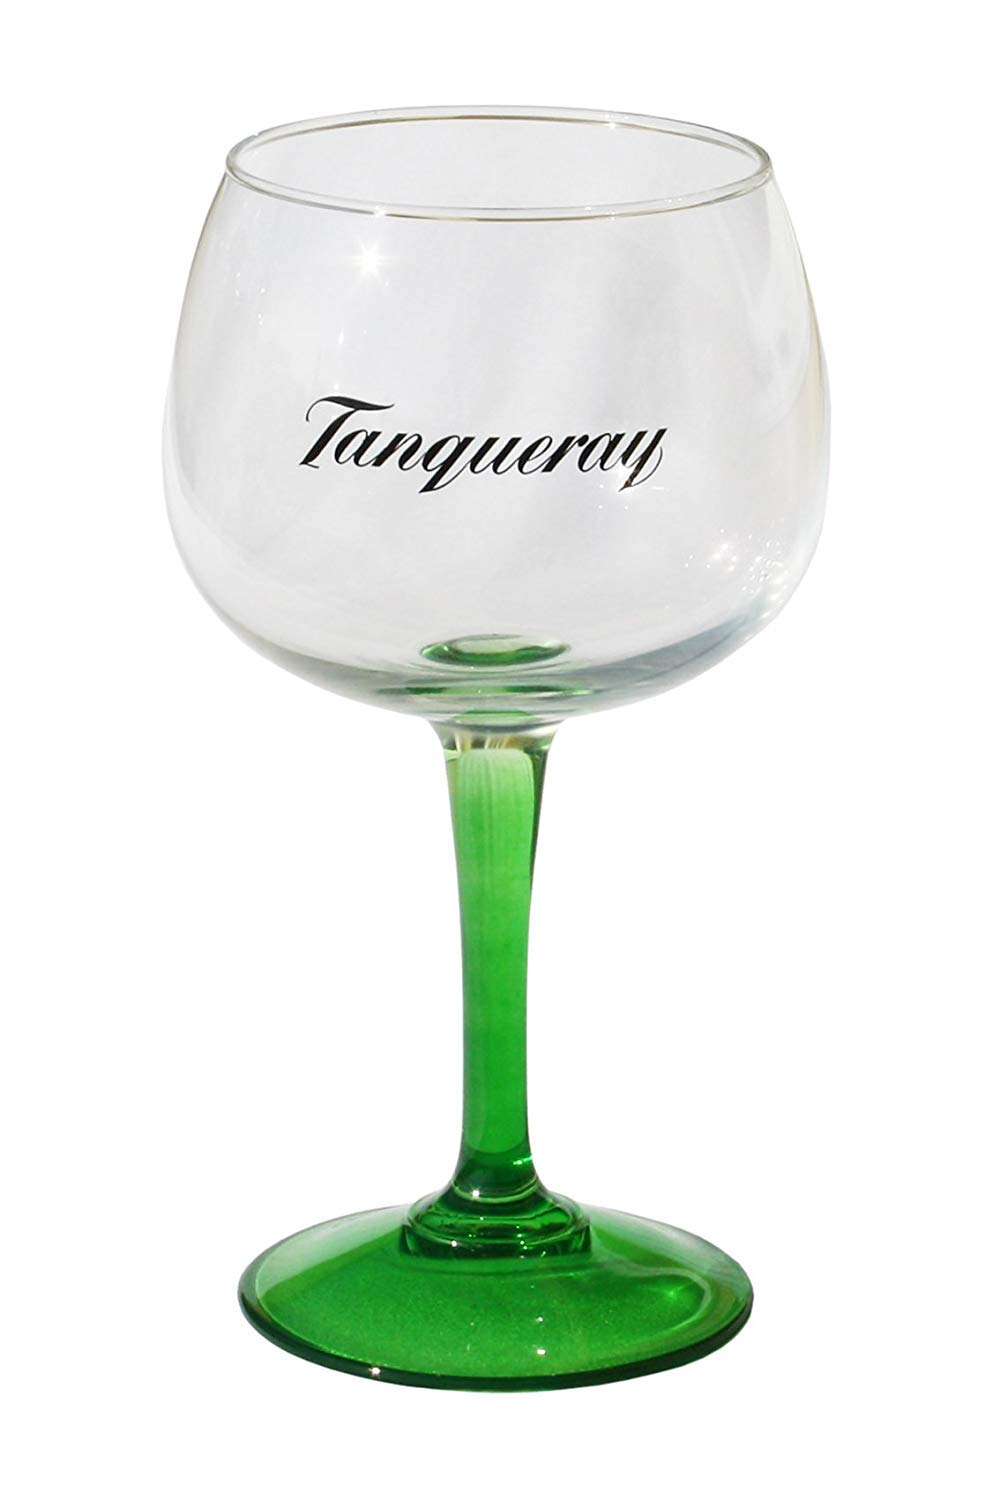 10 1x Tanqueray London Dry Gin Balloon Copa Glass